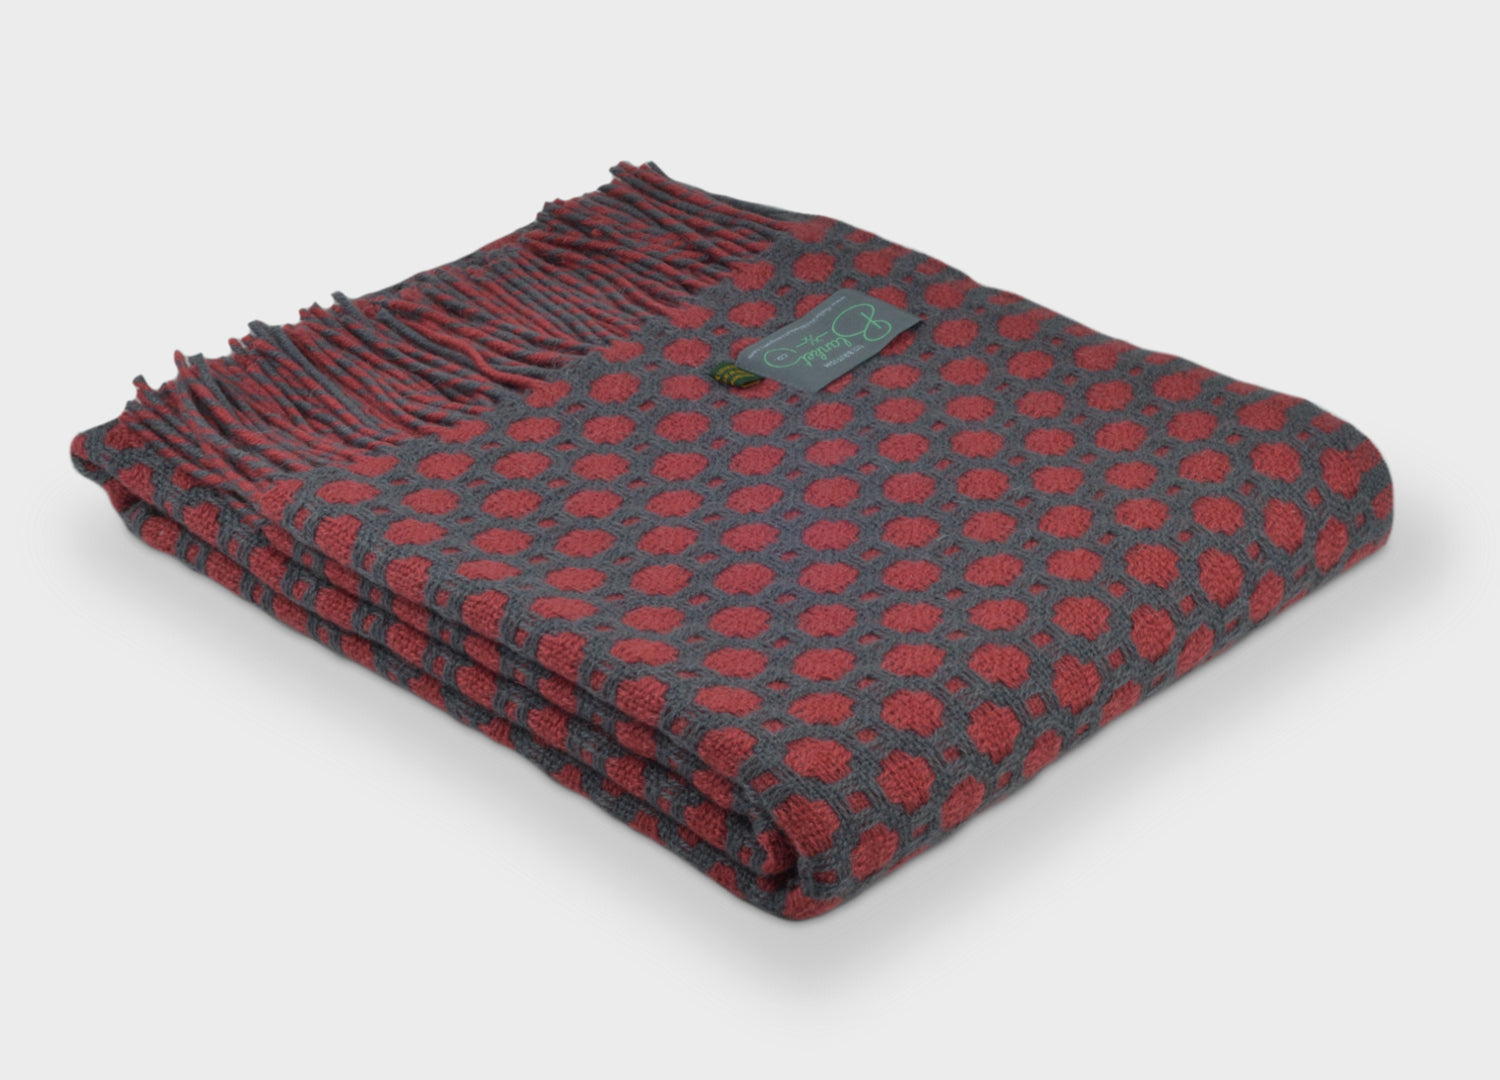 Red Wool Throws and Blankets | The British Blanket Company